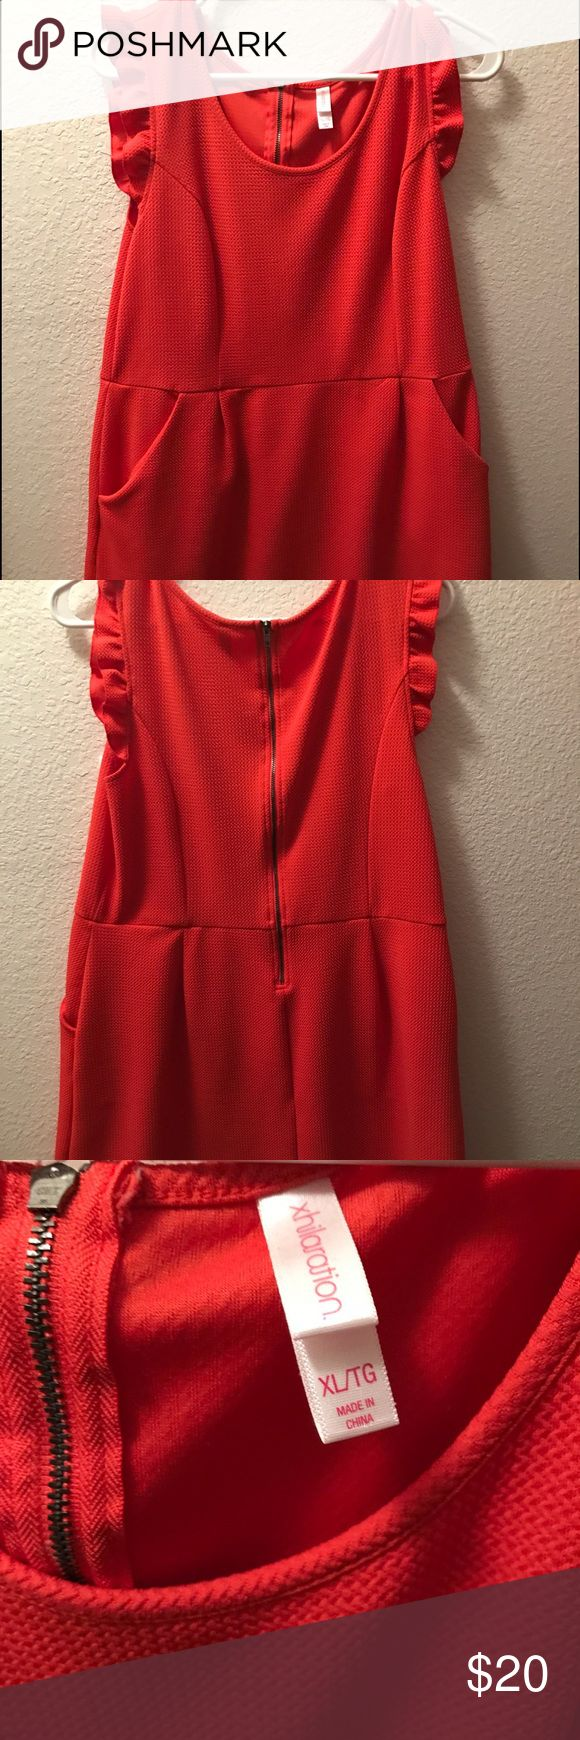 Orange dress with Ruffle Sleeves This dress is short. Mid to high thigh. Worn once. Xhilaration Dresses